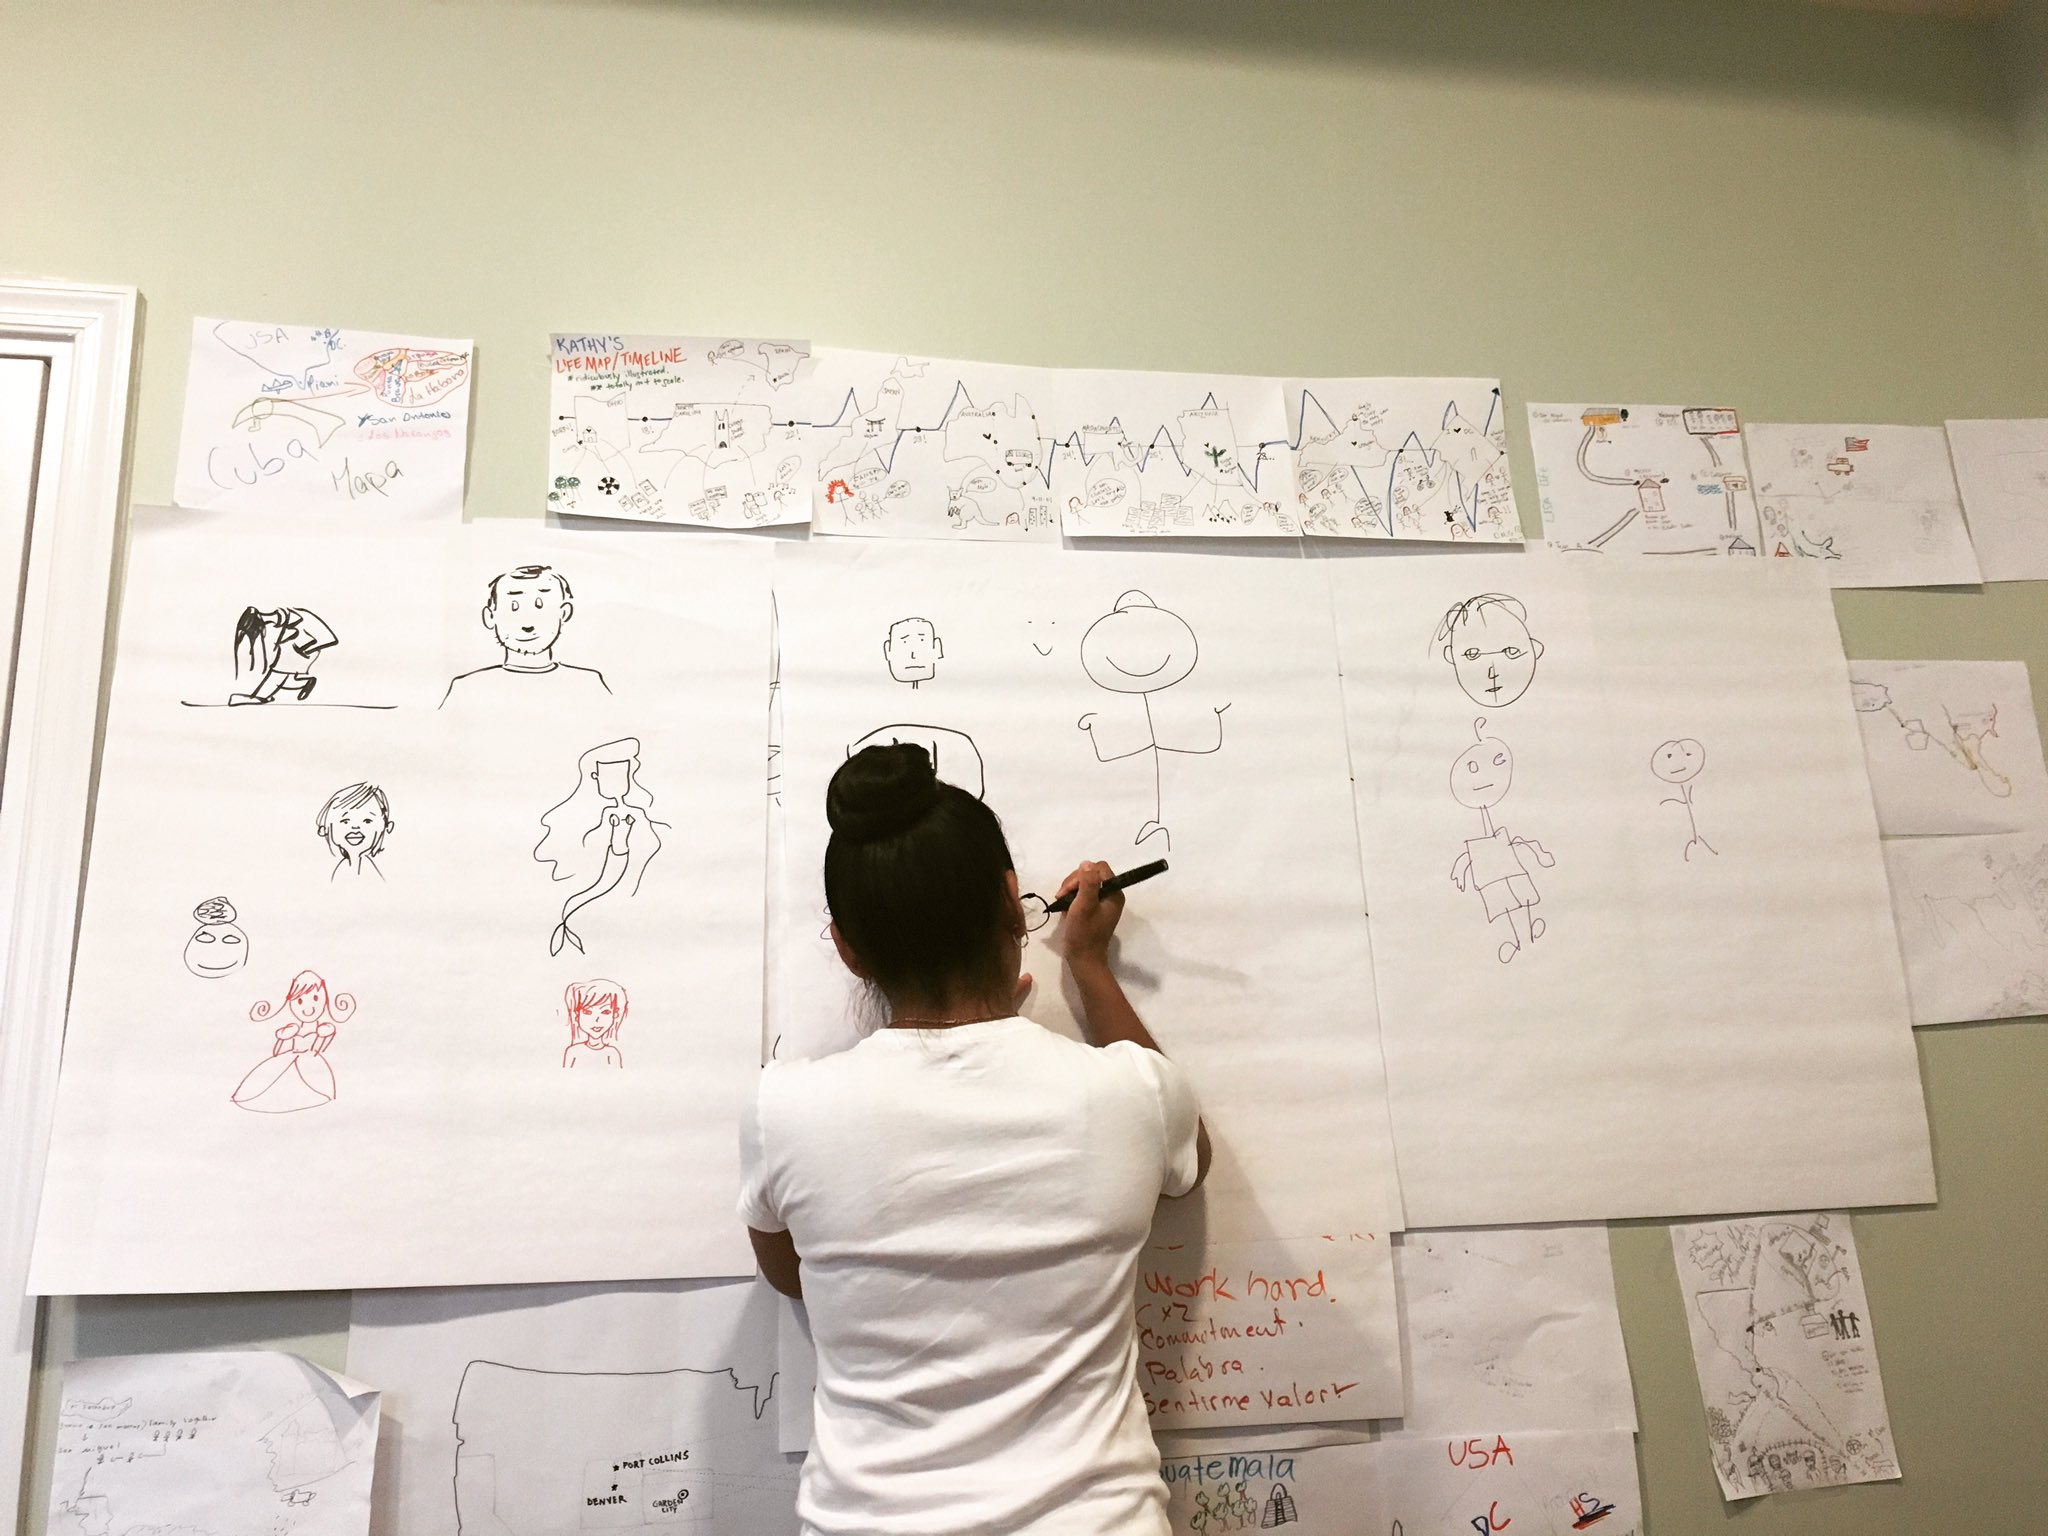 On Day 2 of LAYC graphic novel workshop, writers were asked to draw themselves!